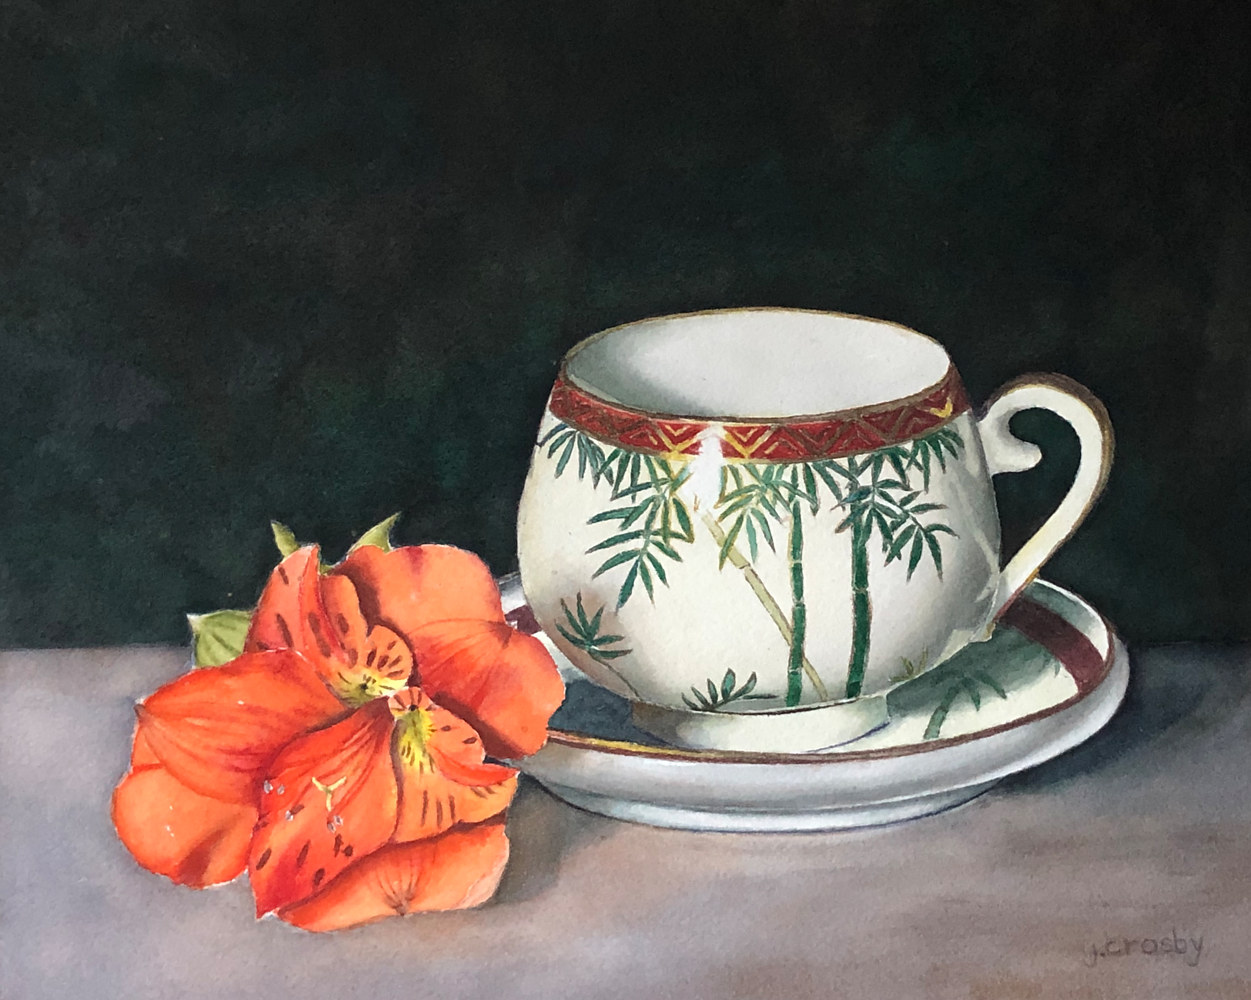 Watercolor Bamboo Teacup and Alstromeria by Jane Crosby